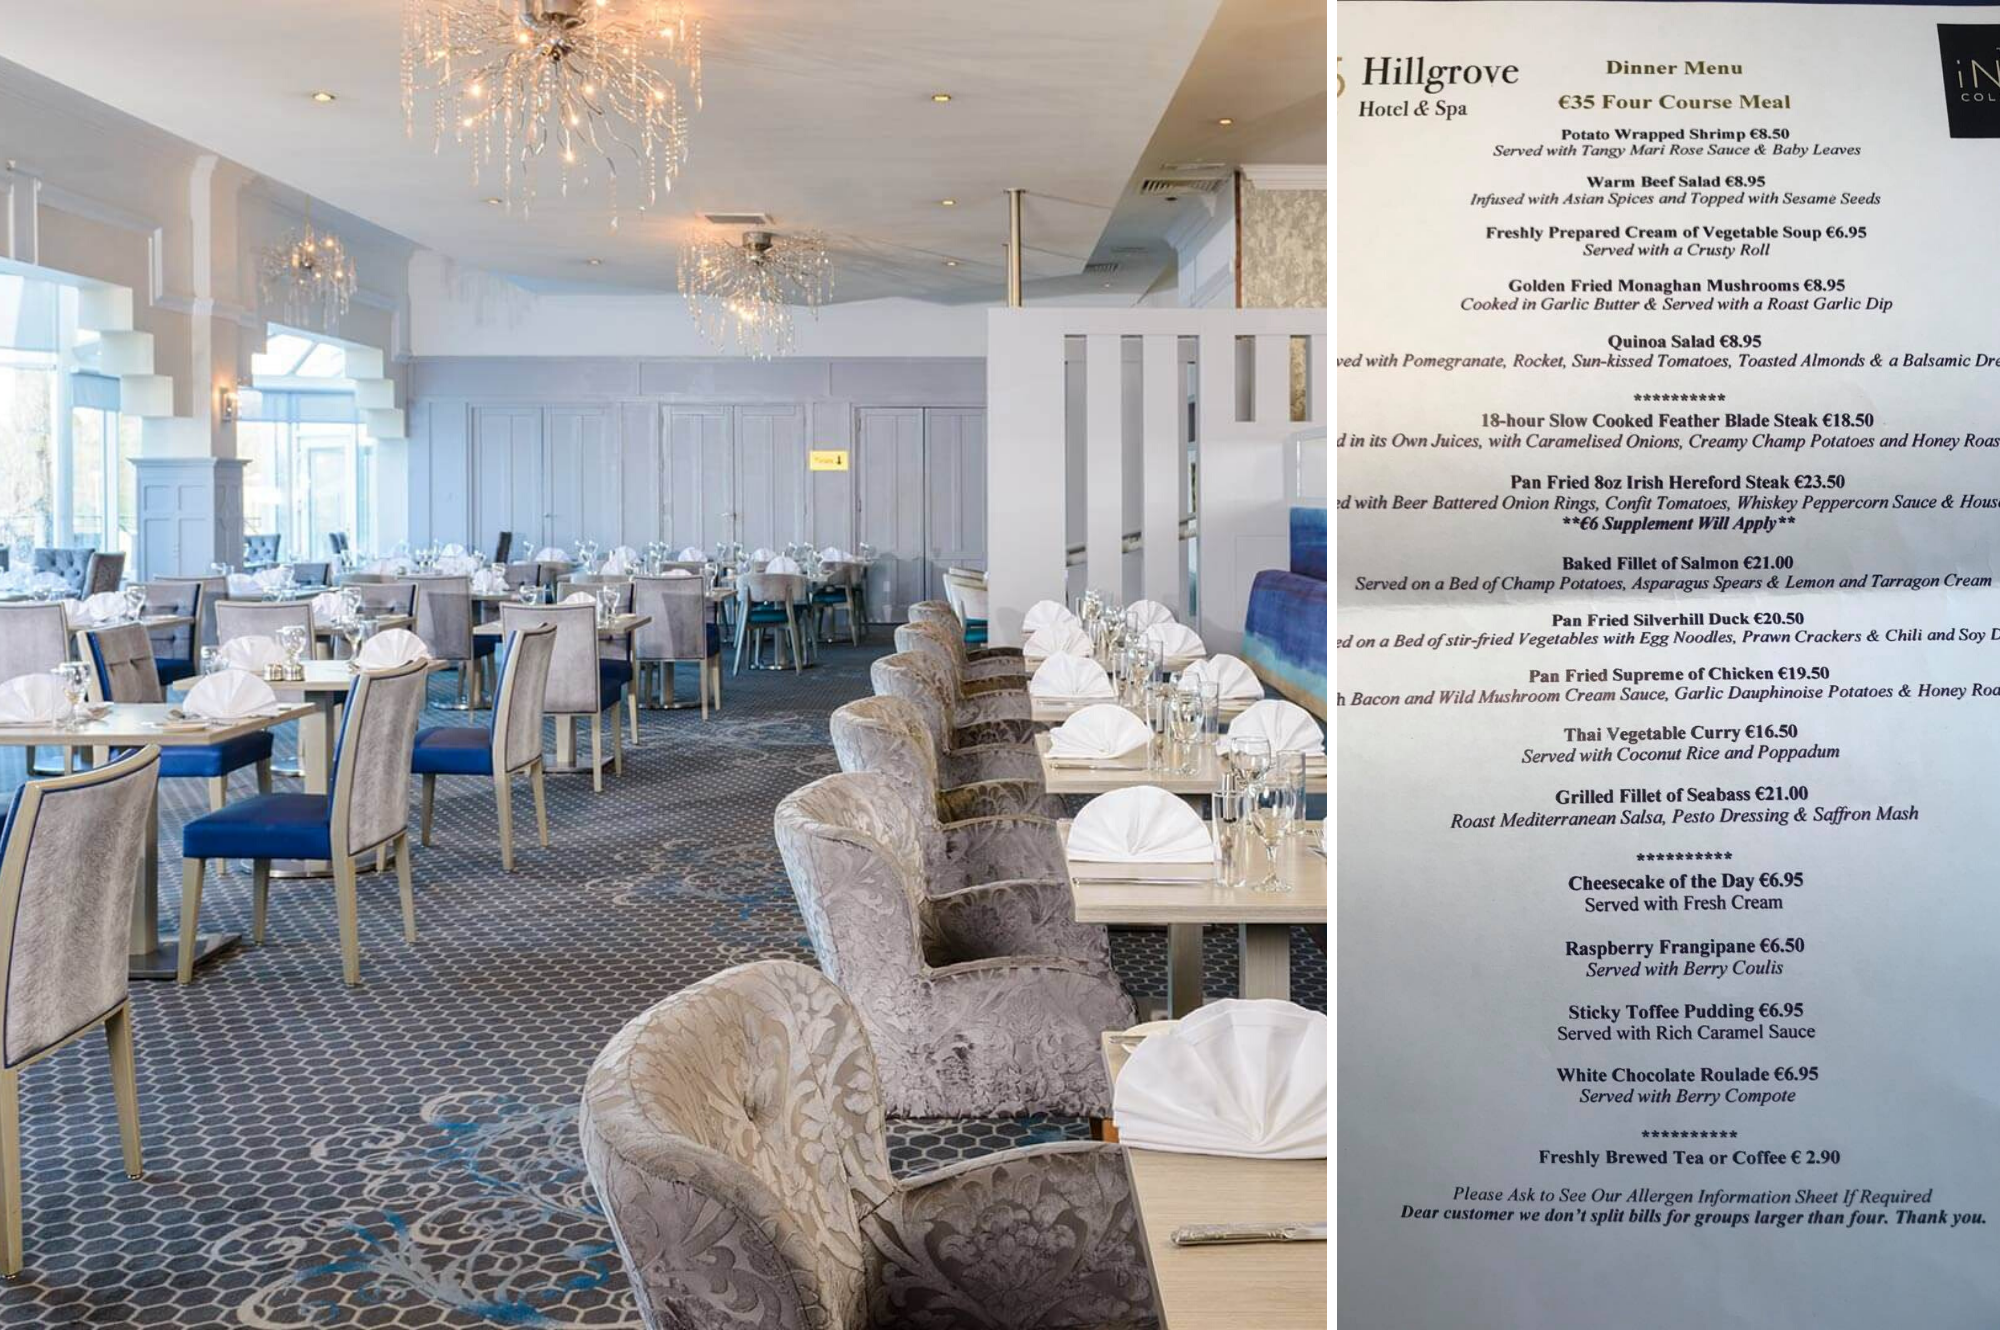 Restaurant - The Hillgrove Hotel and Spa Monaghan - A Review by Saucepan Kids - Irish multi award-winning family travel and food blog